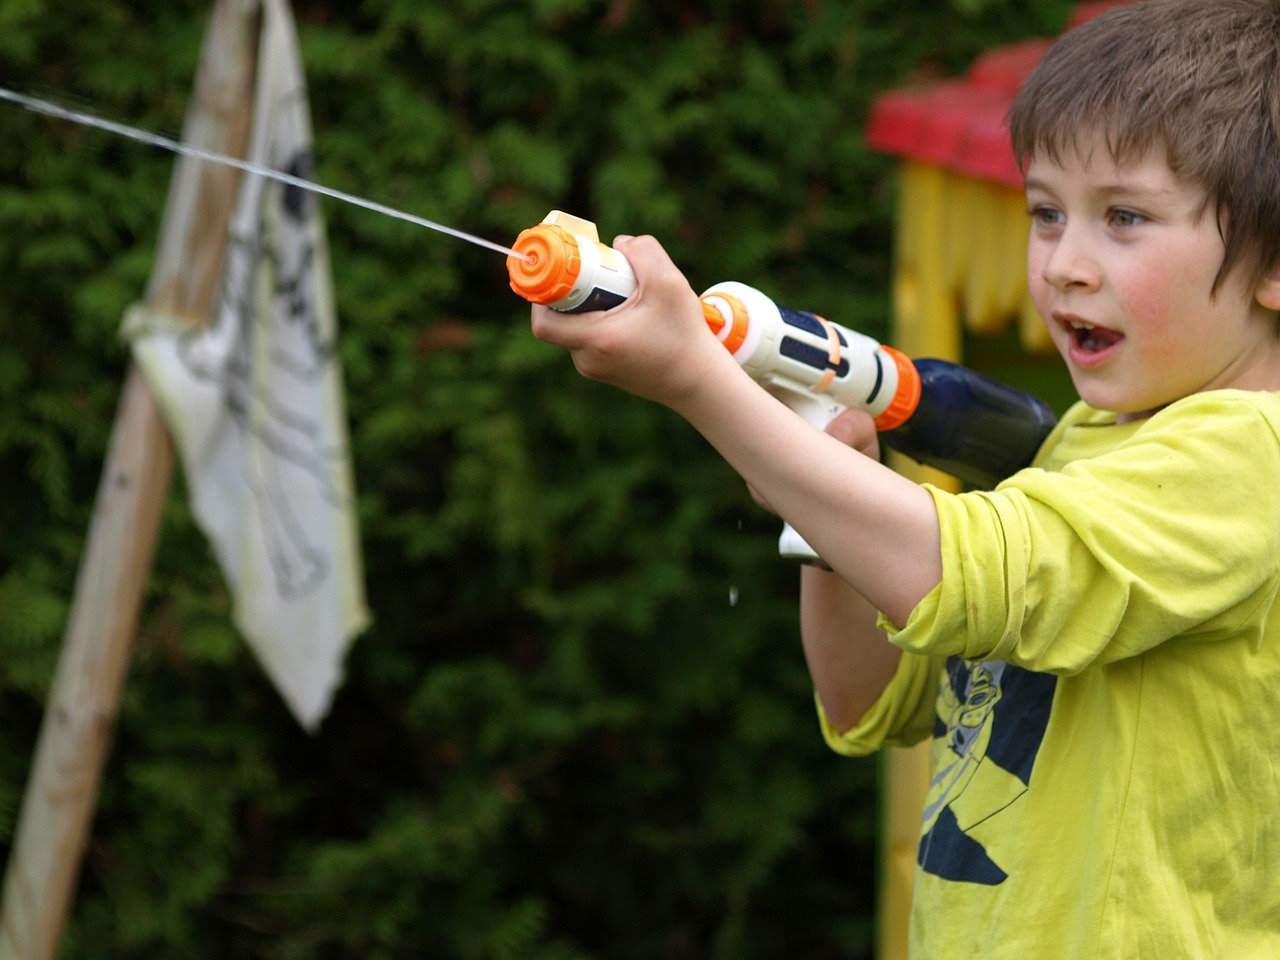 Child with a water gun